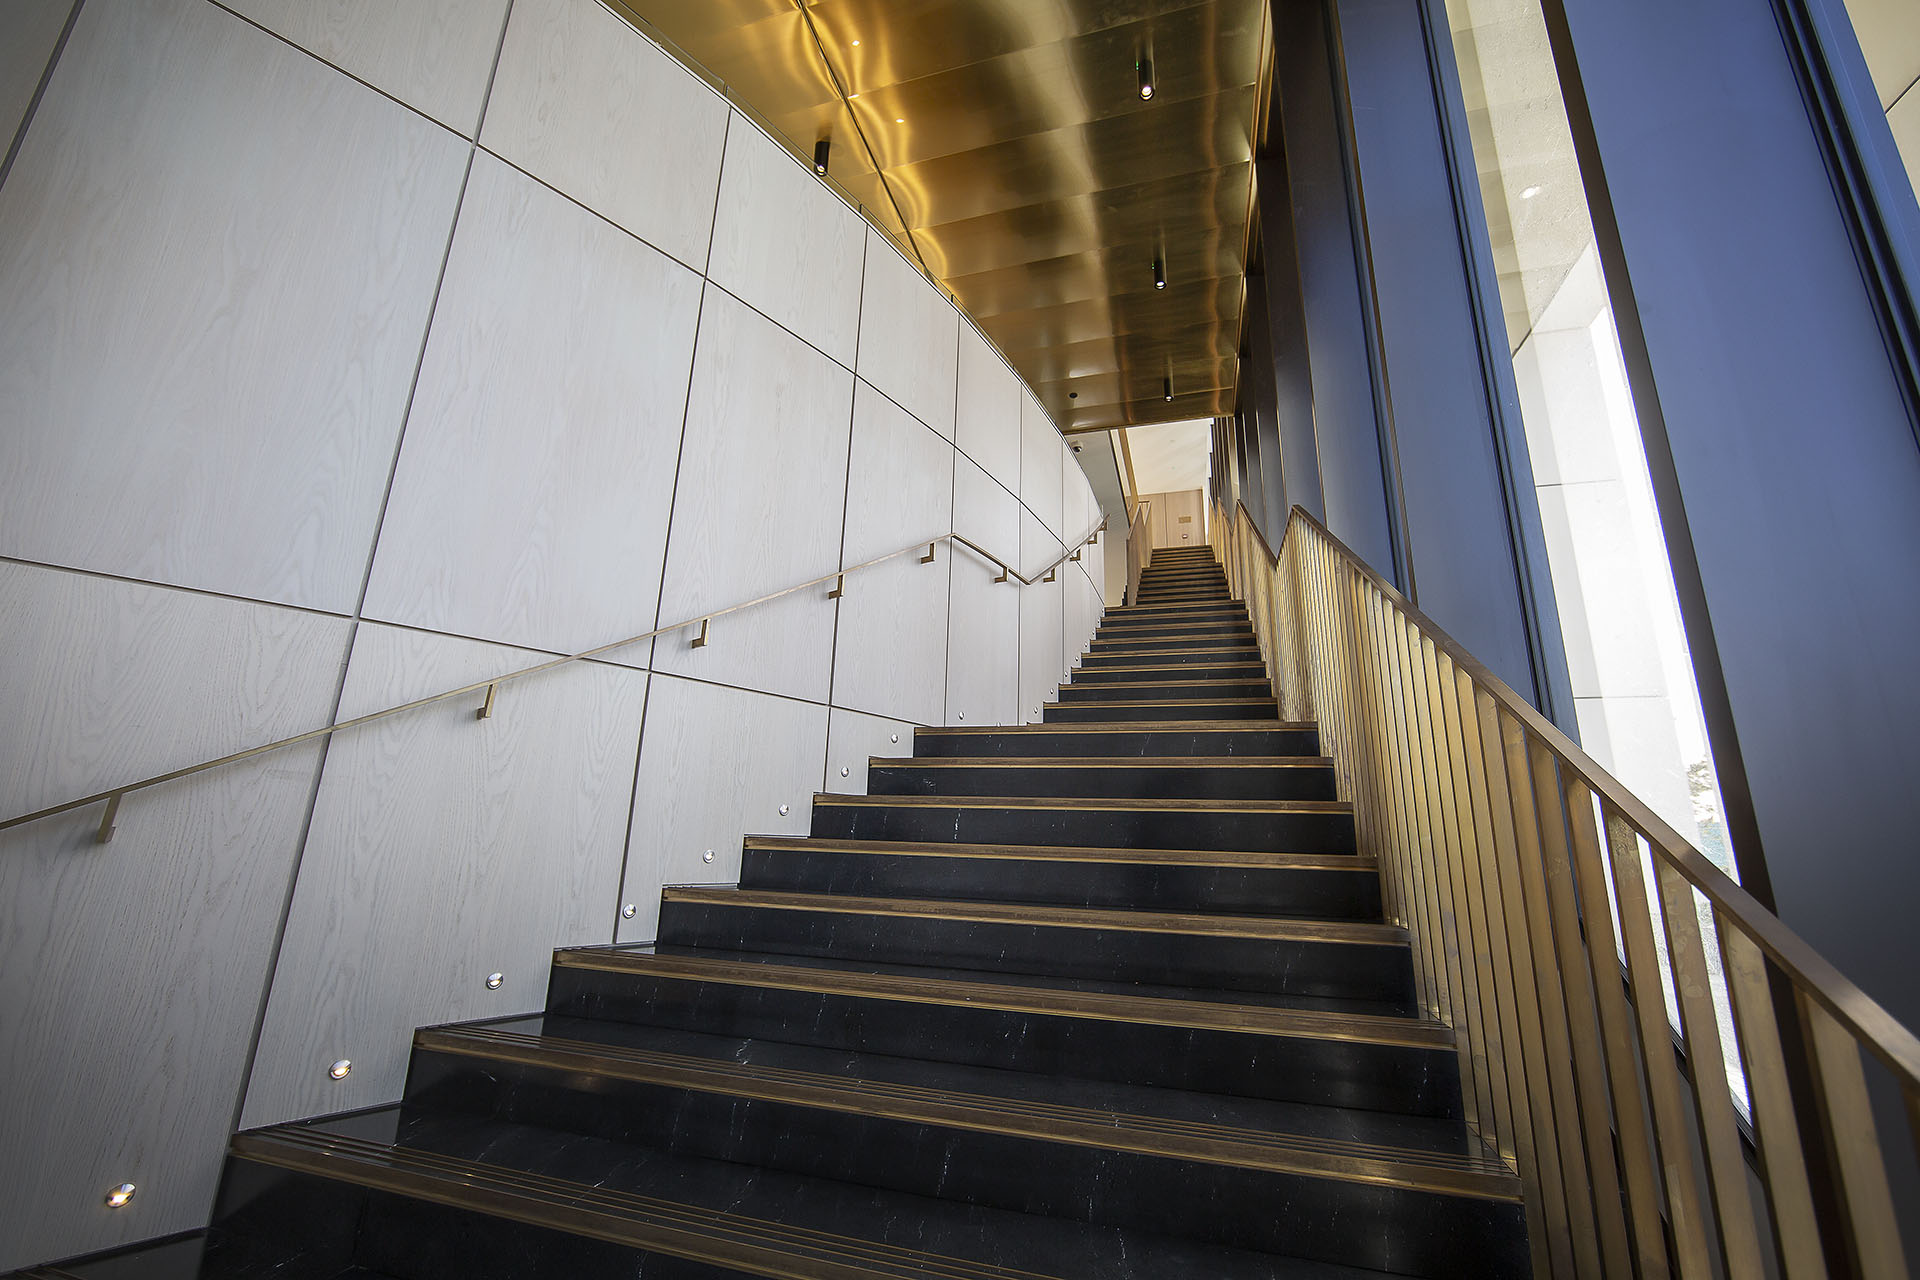 Stairs leading to study area on mezzanine floor adjacent to library with cinema above